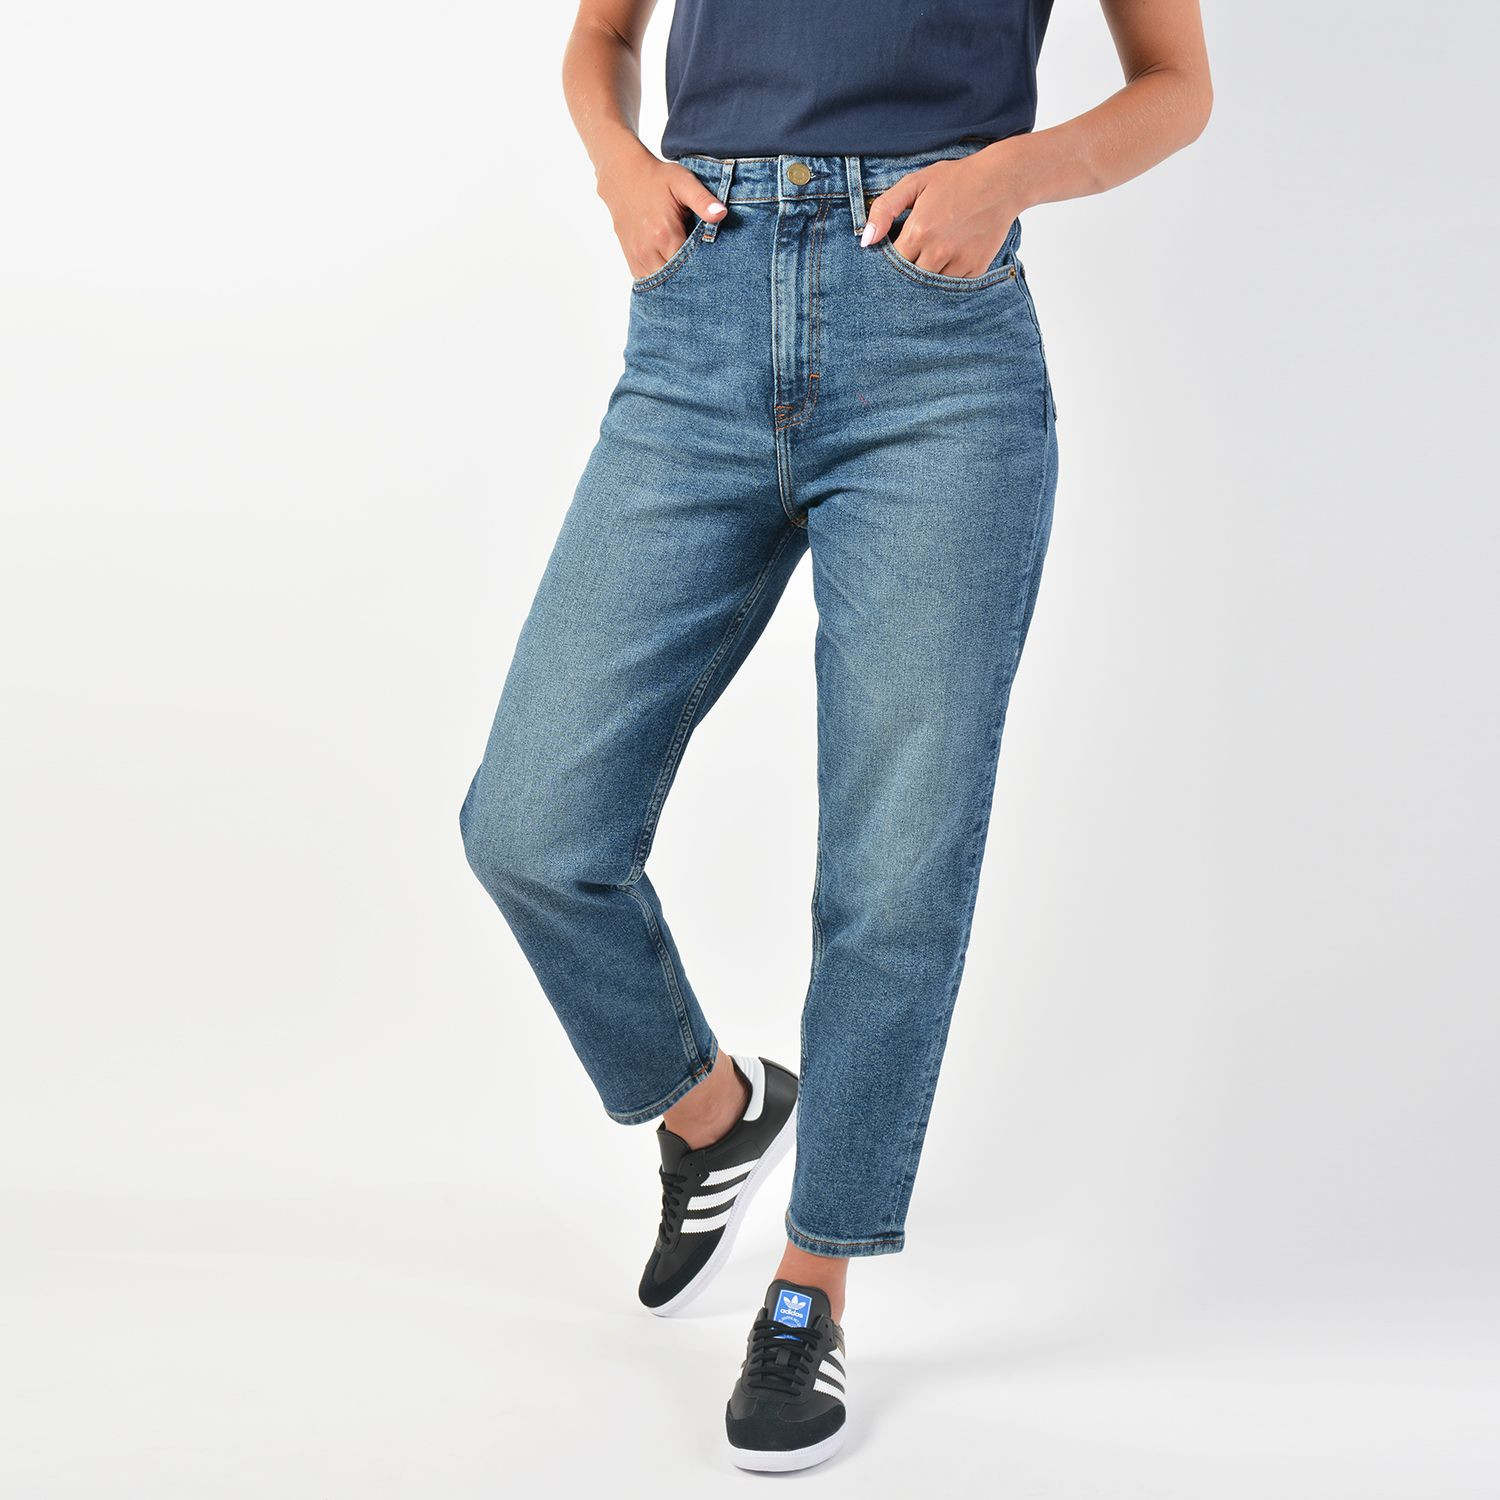 Tommy Jeans 2004 High Rise Tapered Jeans (9000036400_41069)